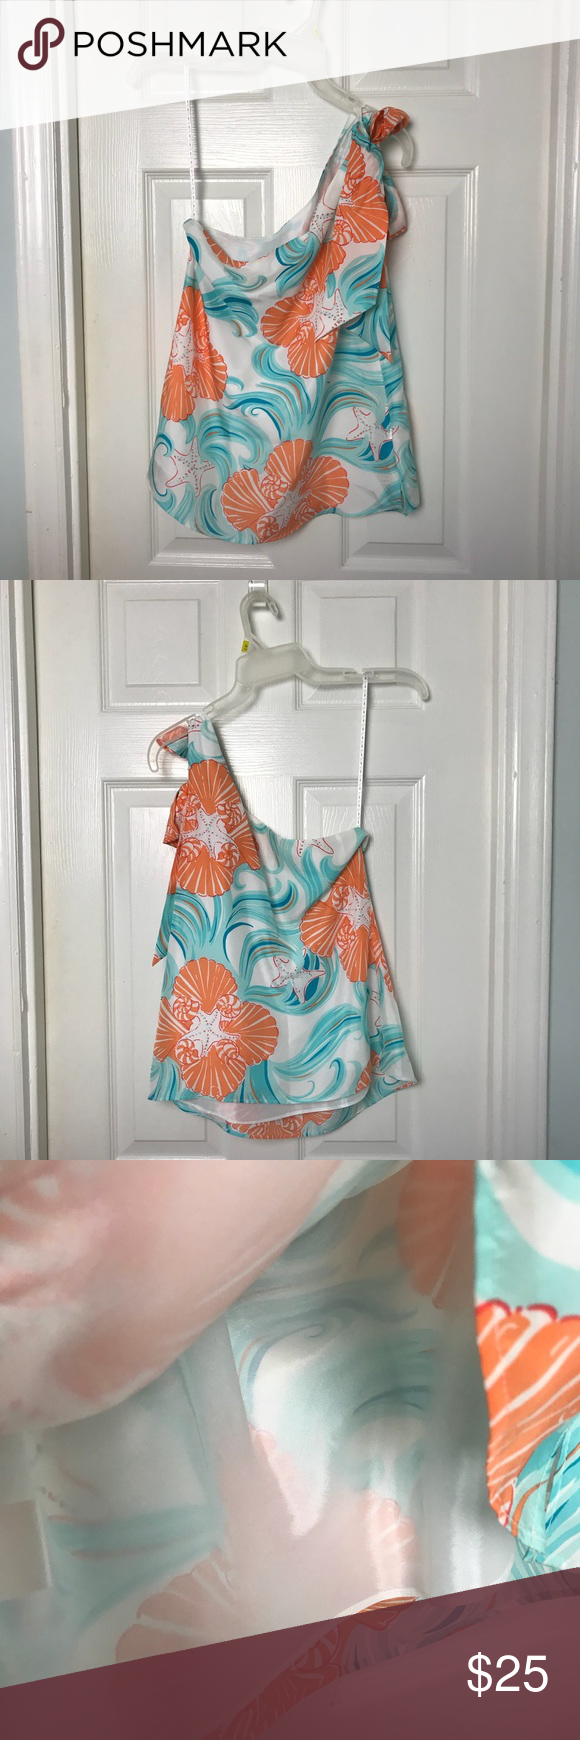 """abc7445fa4e Lilly Pulitzer One Shoulder Top. Size 2 Lilly Pulitzer One Shoulder """"Do The  Wave"""" silk Top. Orange & Aqua colors on a white background."""